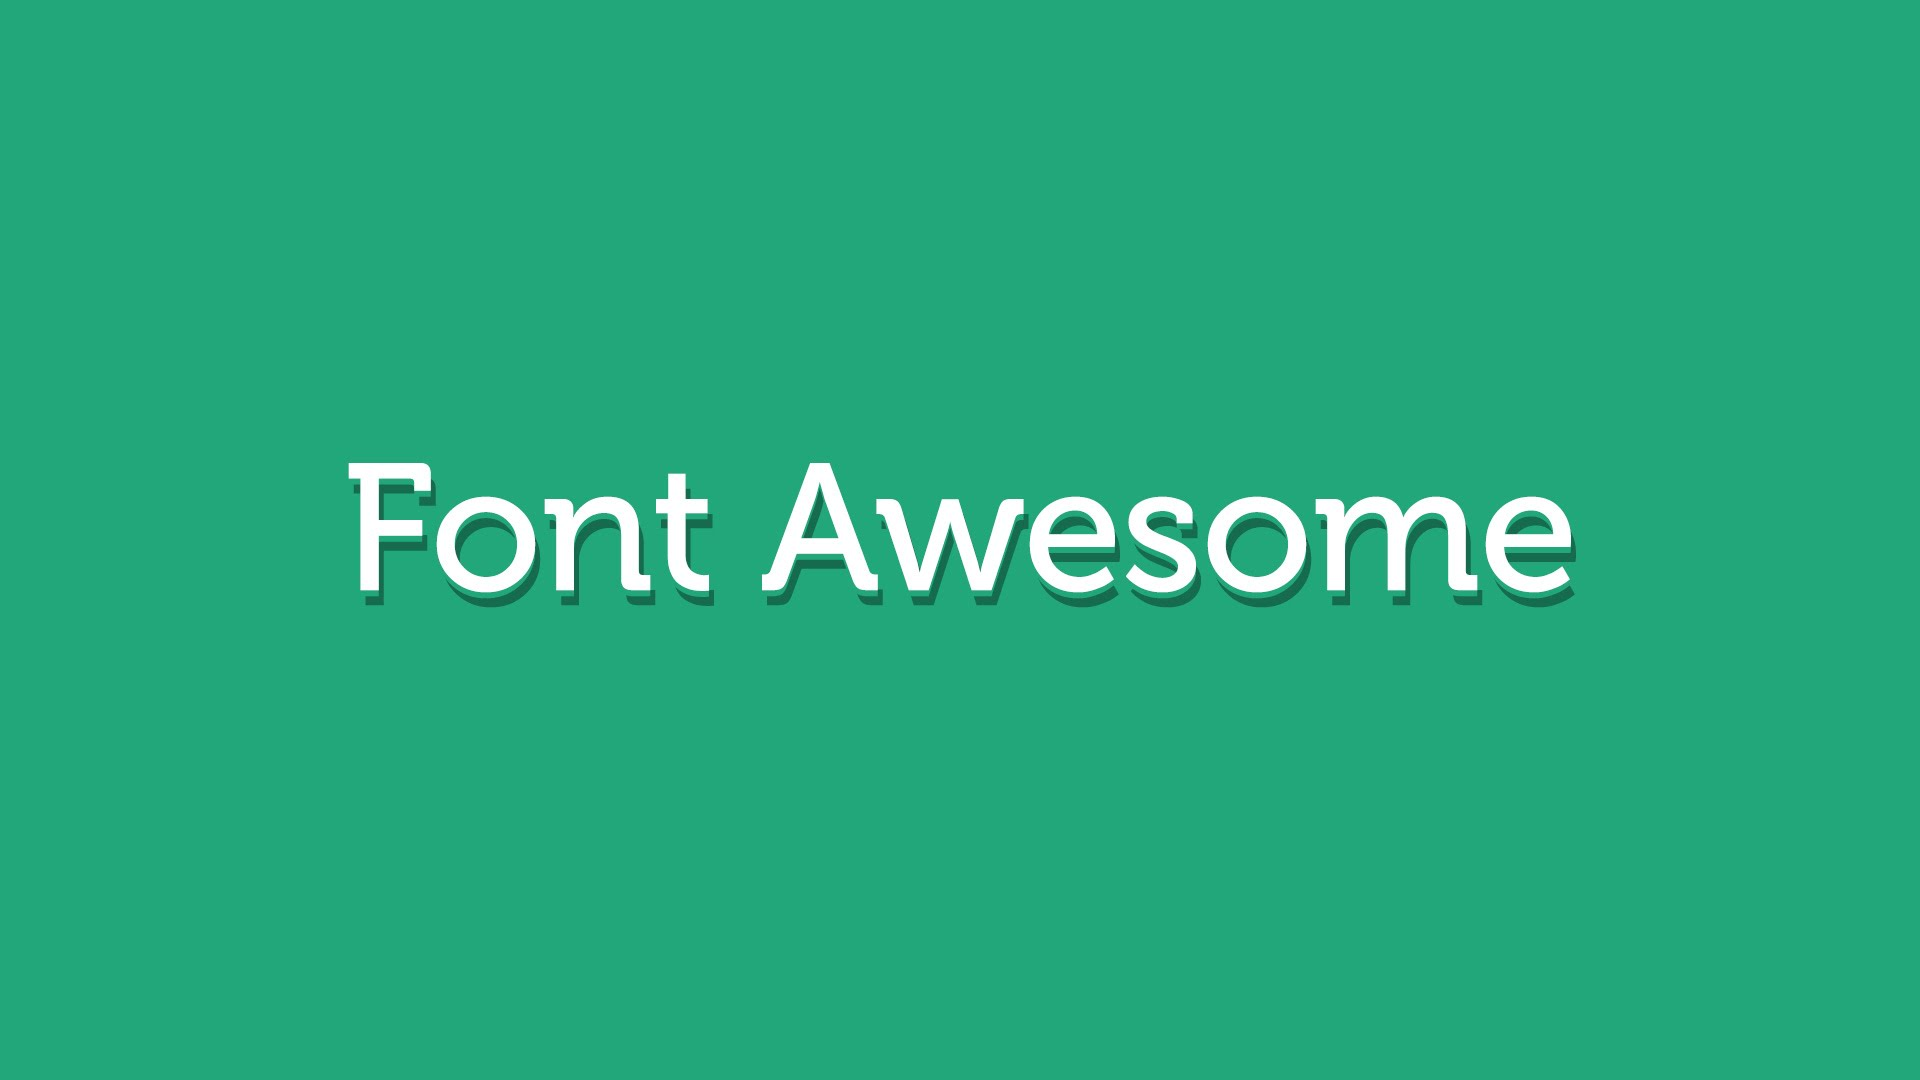 How To Add Font Awesome Icons To WordPress Manually - BeRocket